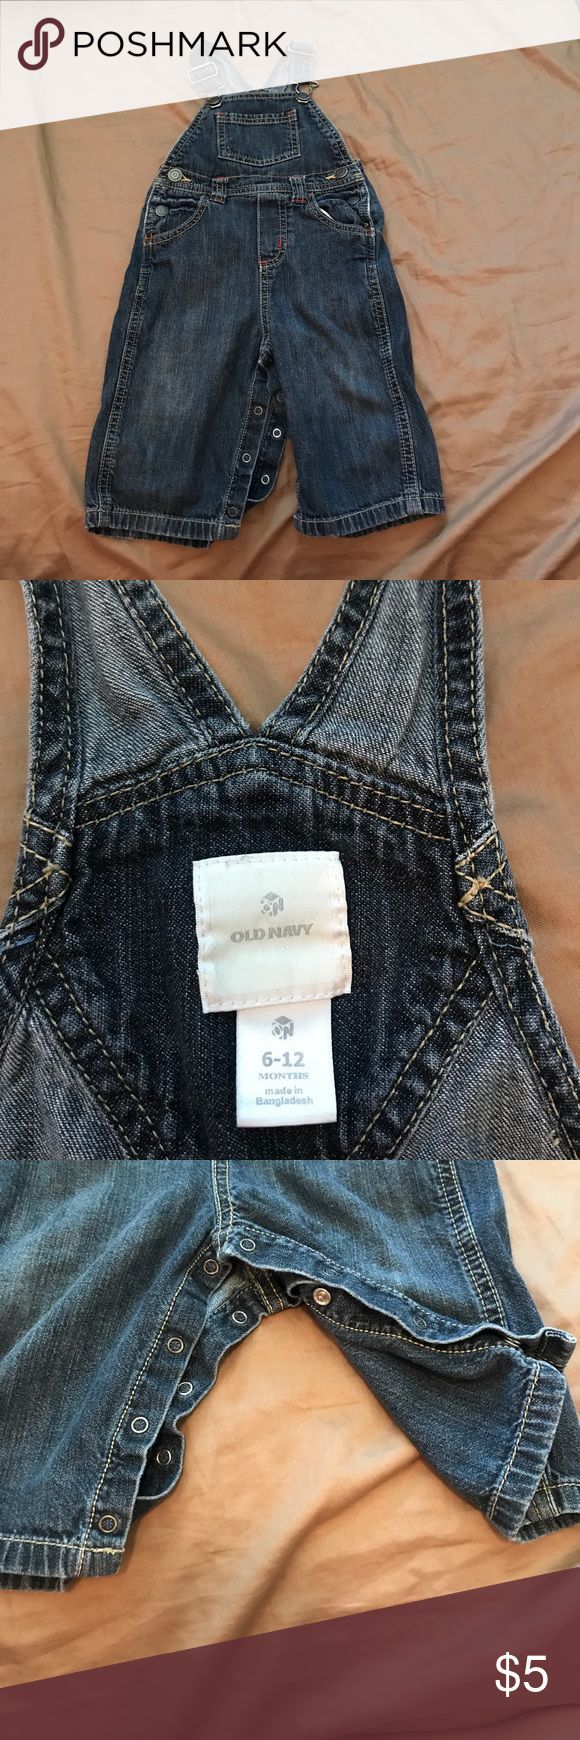 Old Navy Jean Overalls 6-12 months 6-12 month Old Navy Jean overalls. They have bottom and side snaps and the straps are adjustable. In good condition. Old Navy Bottoms Overalls